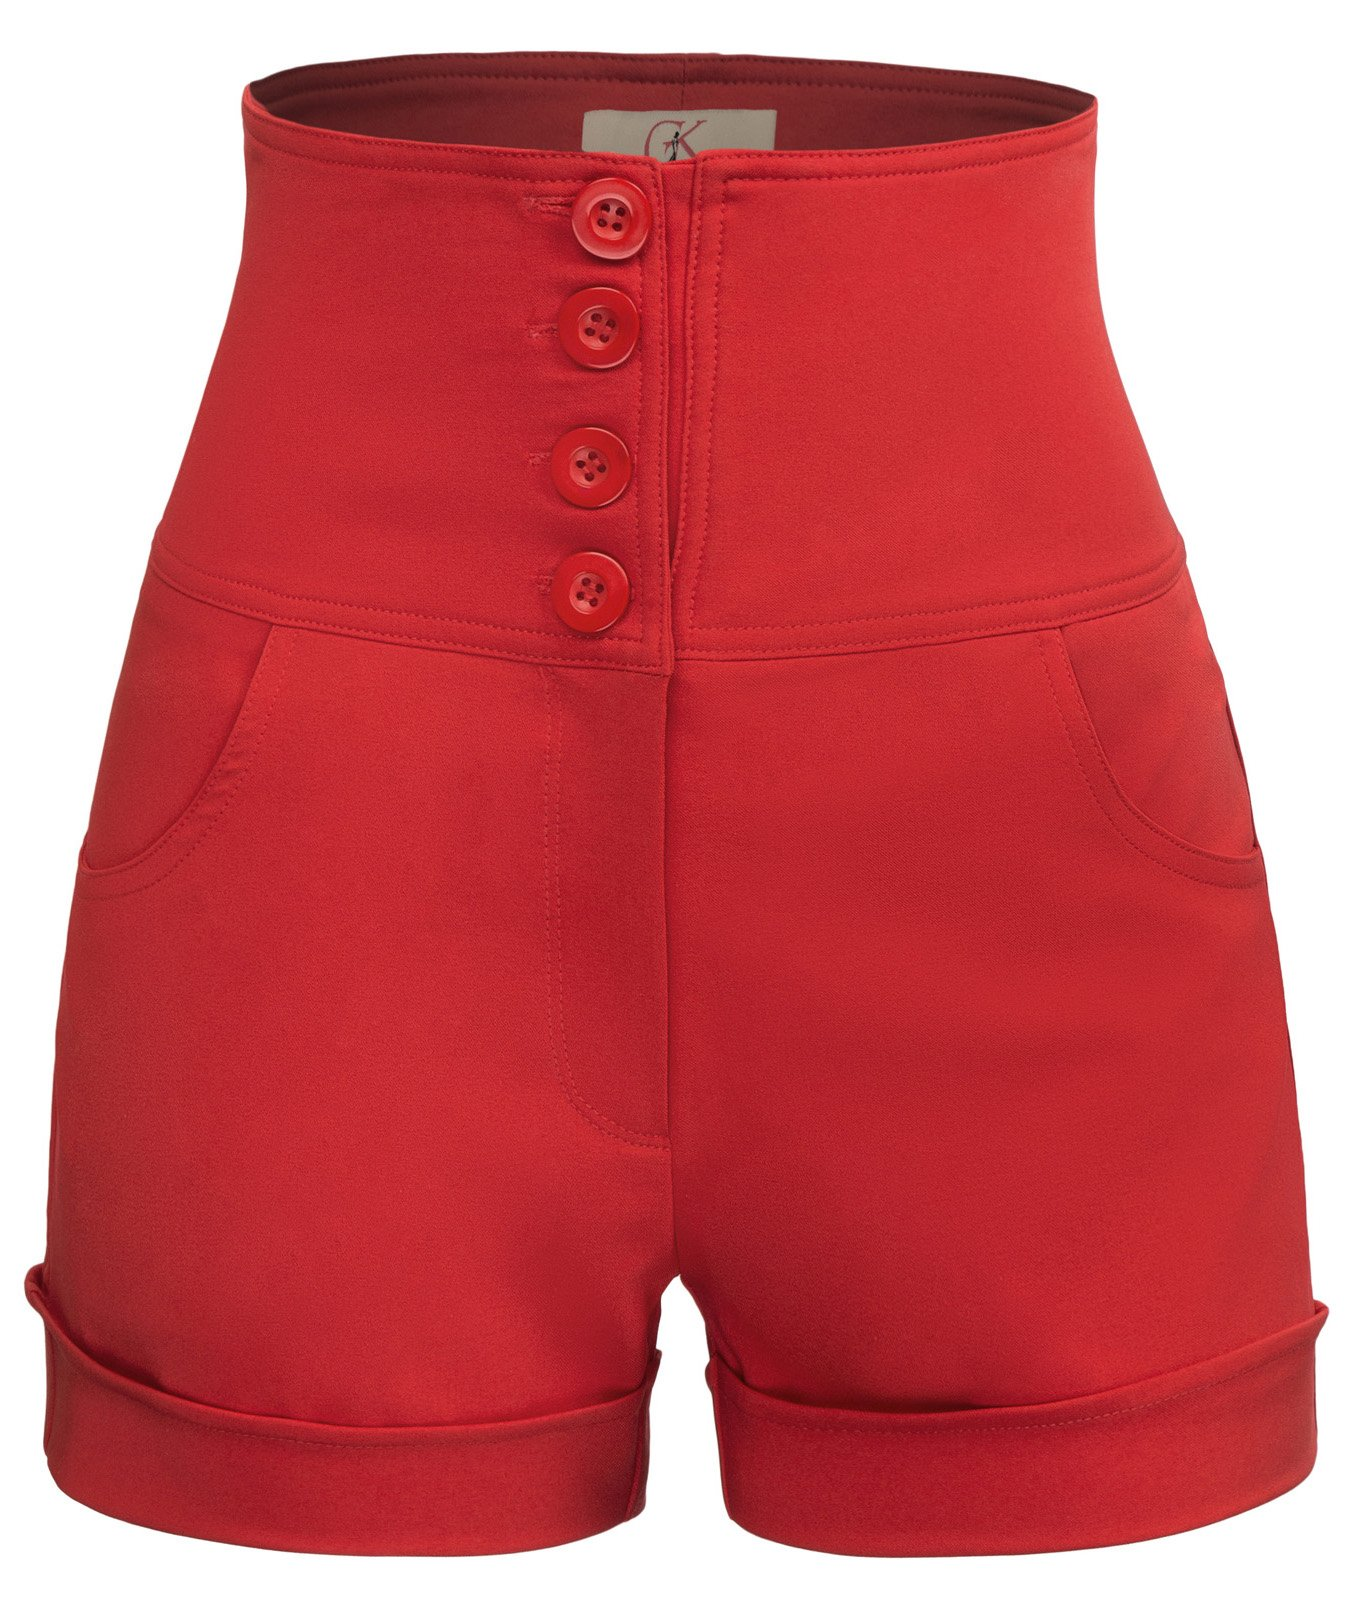 GRACE KARIN Women's High Waisted Sailor Shorts with Pockets Size M Red…